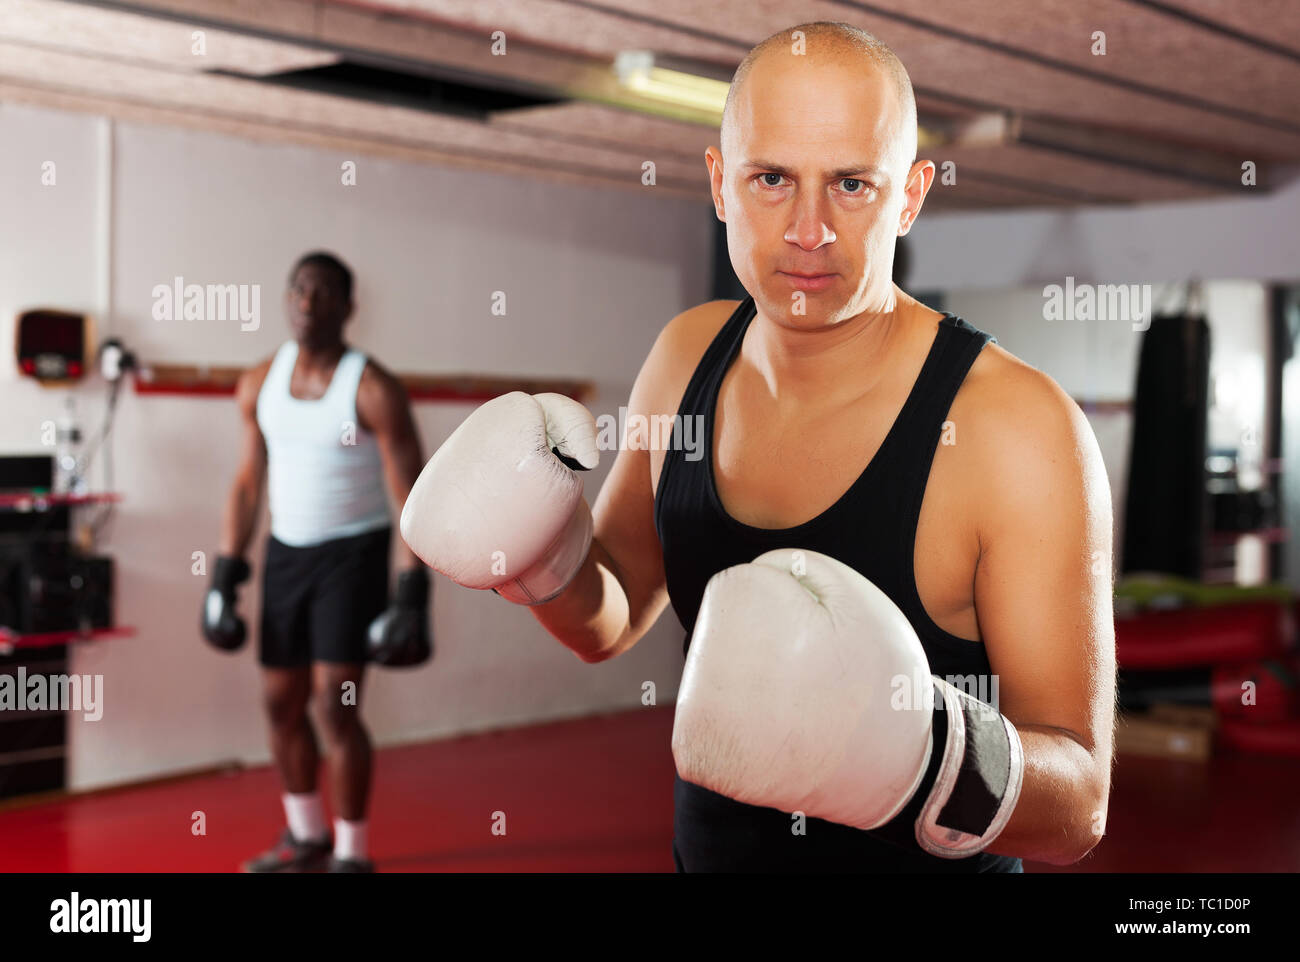 Potrait of serious man boxer who is training in gym - Stock Image